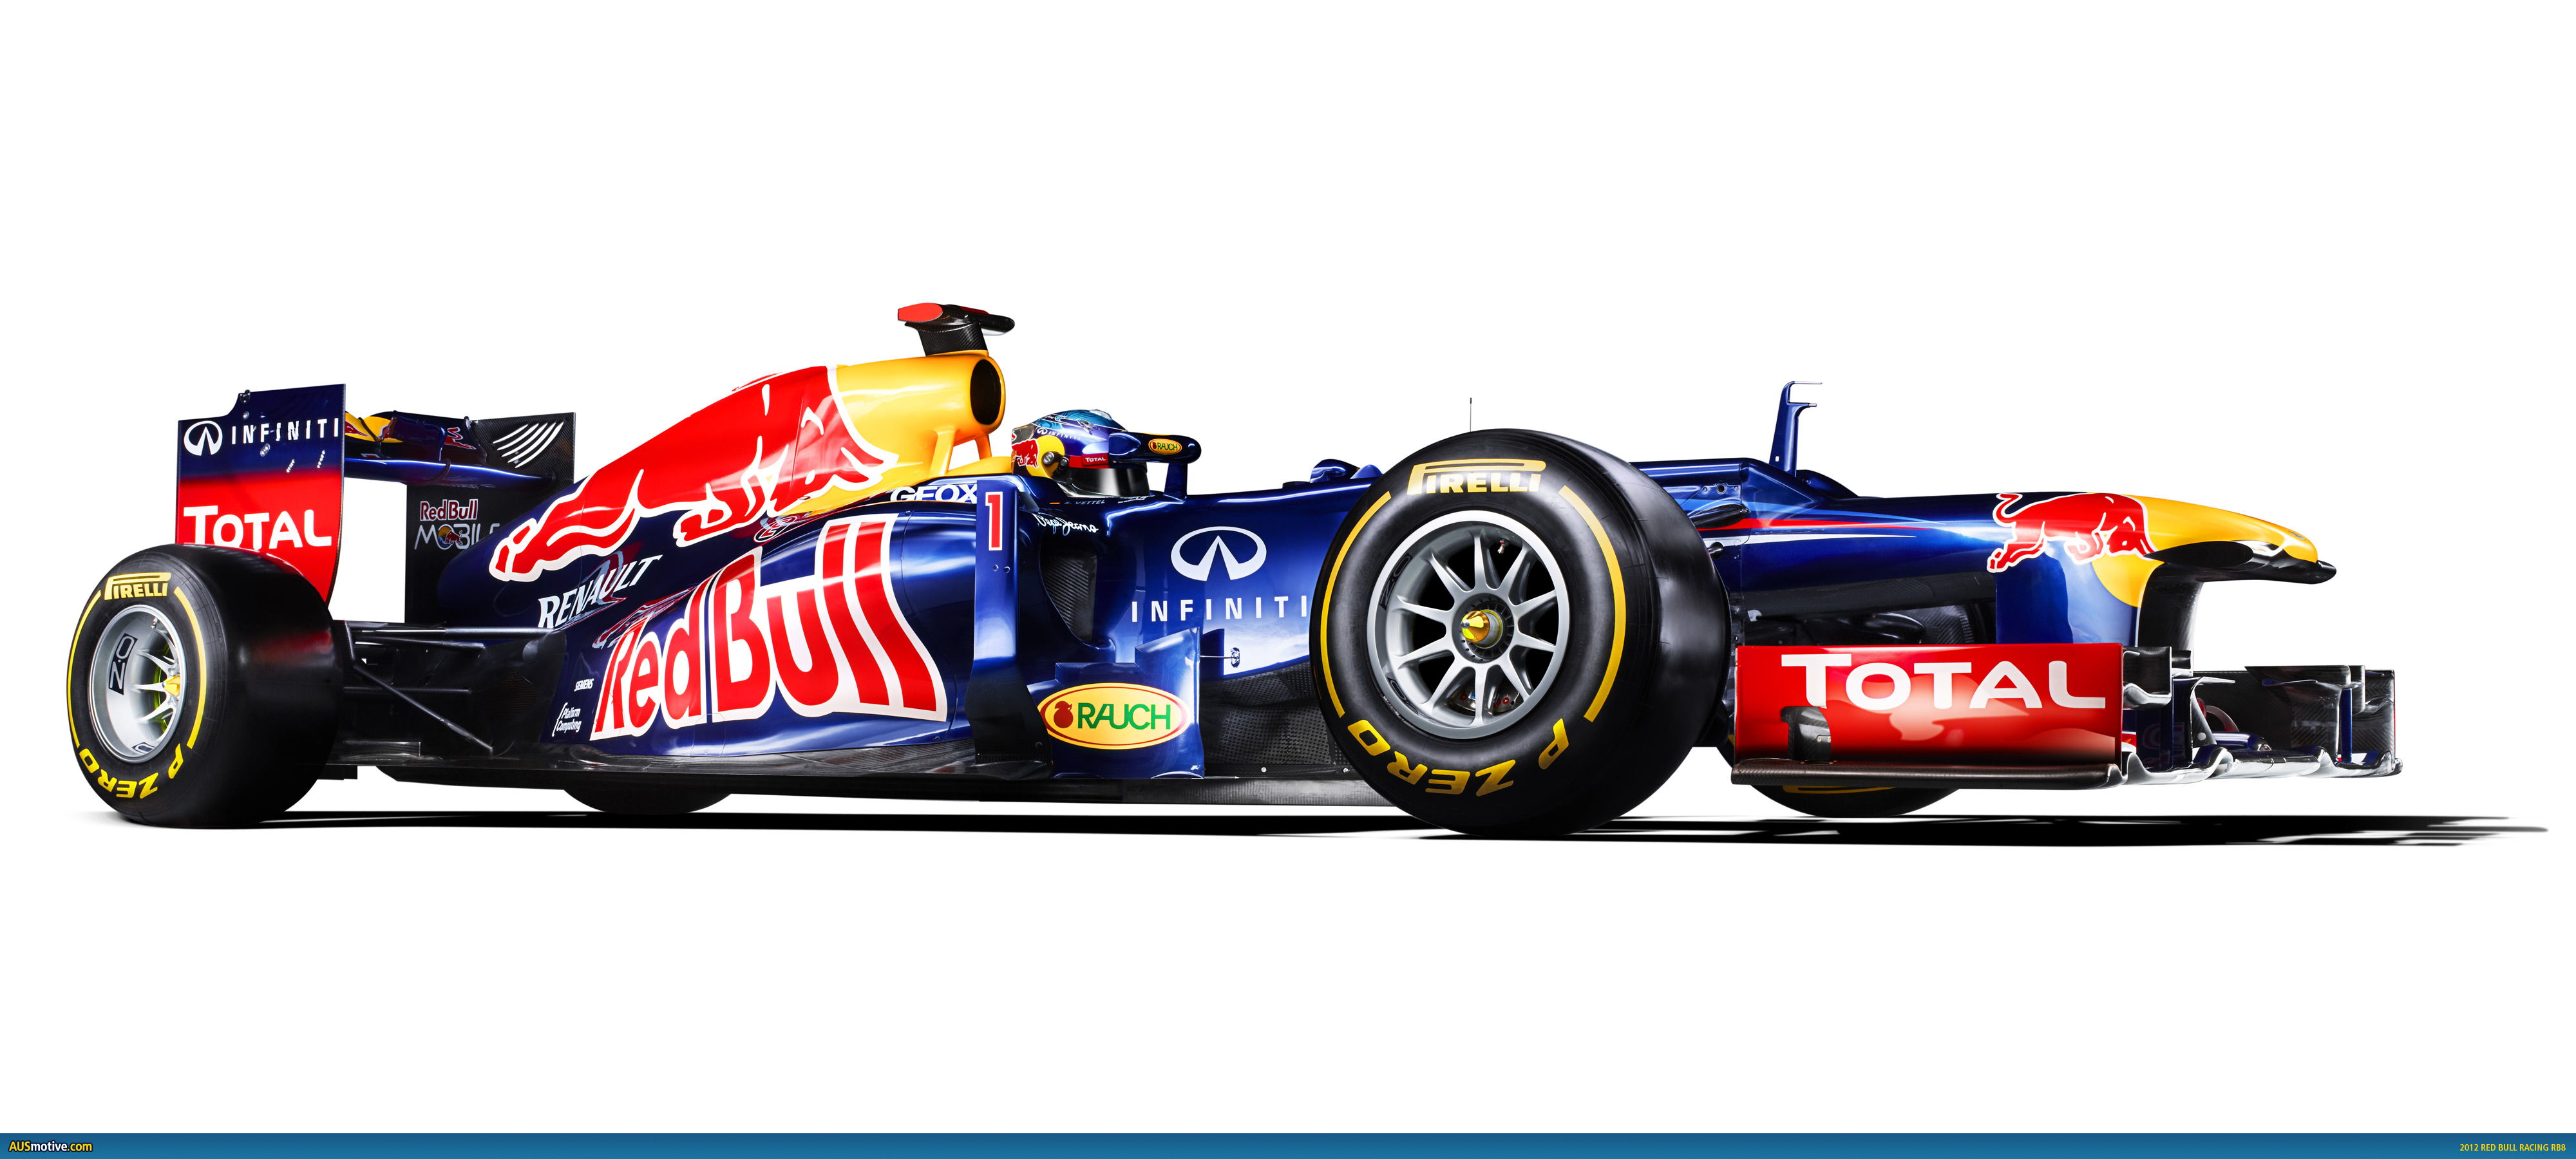 red bull racing unveils 2012 f1 car. Black Bedroom Furniture Sets. Home Design Ideas